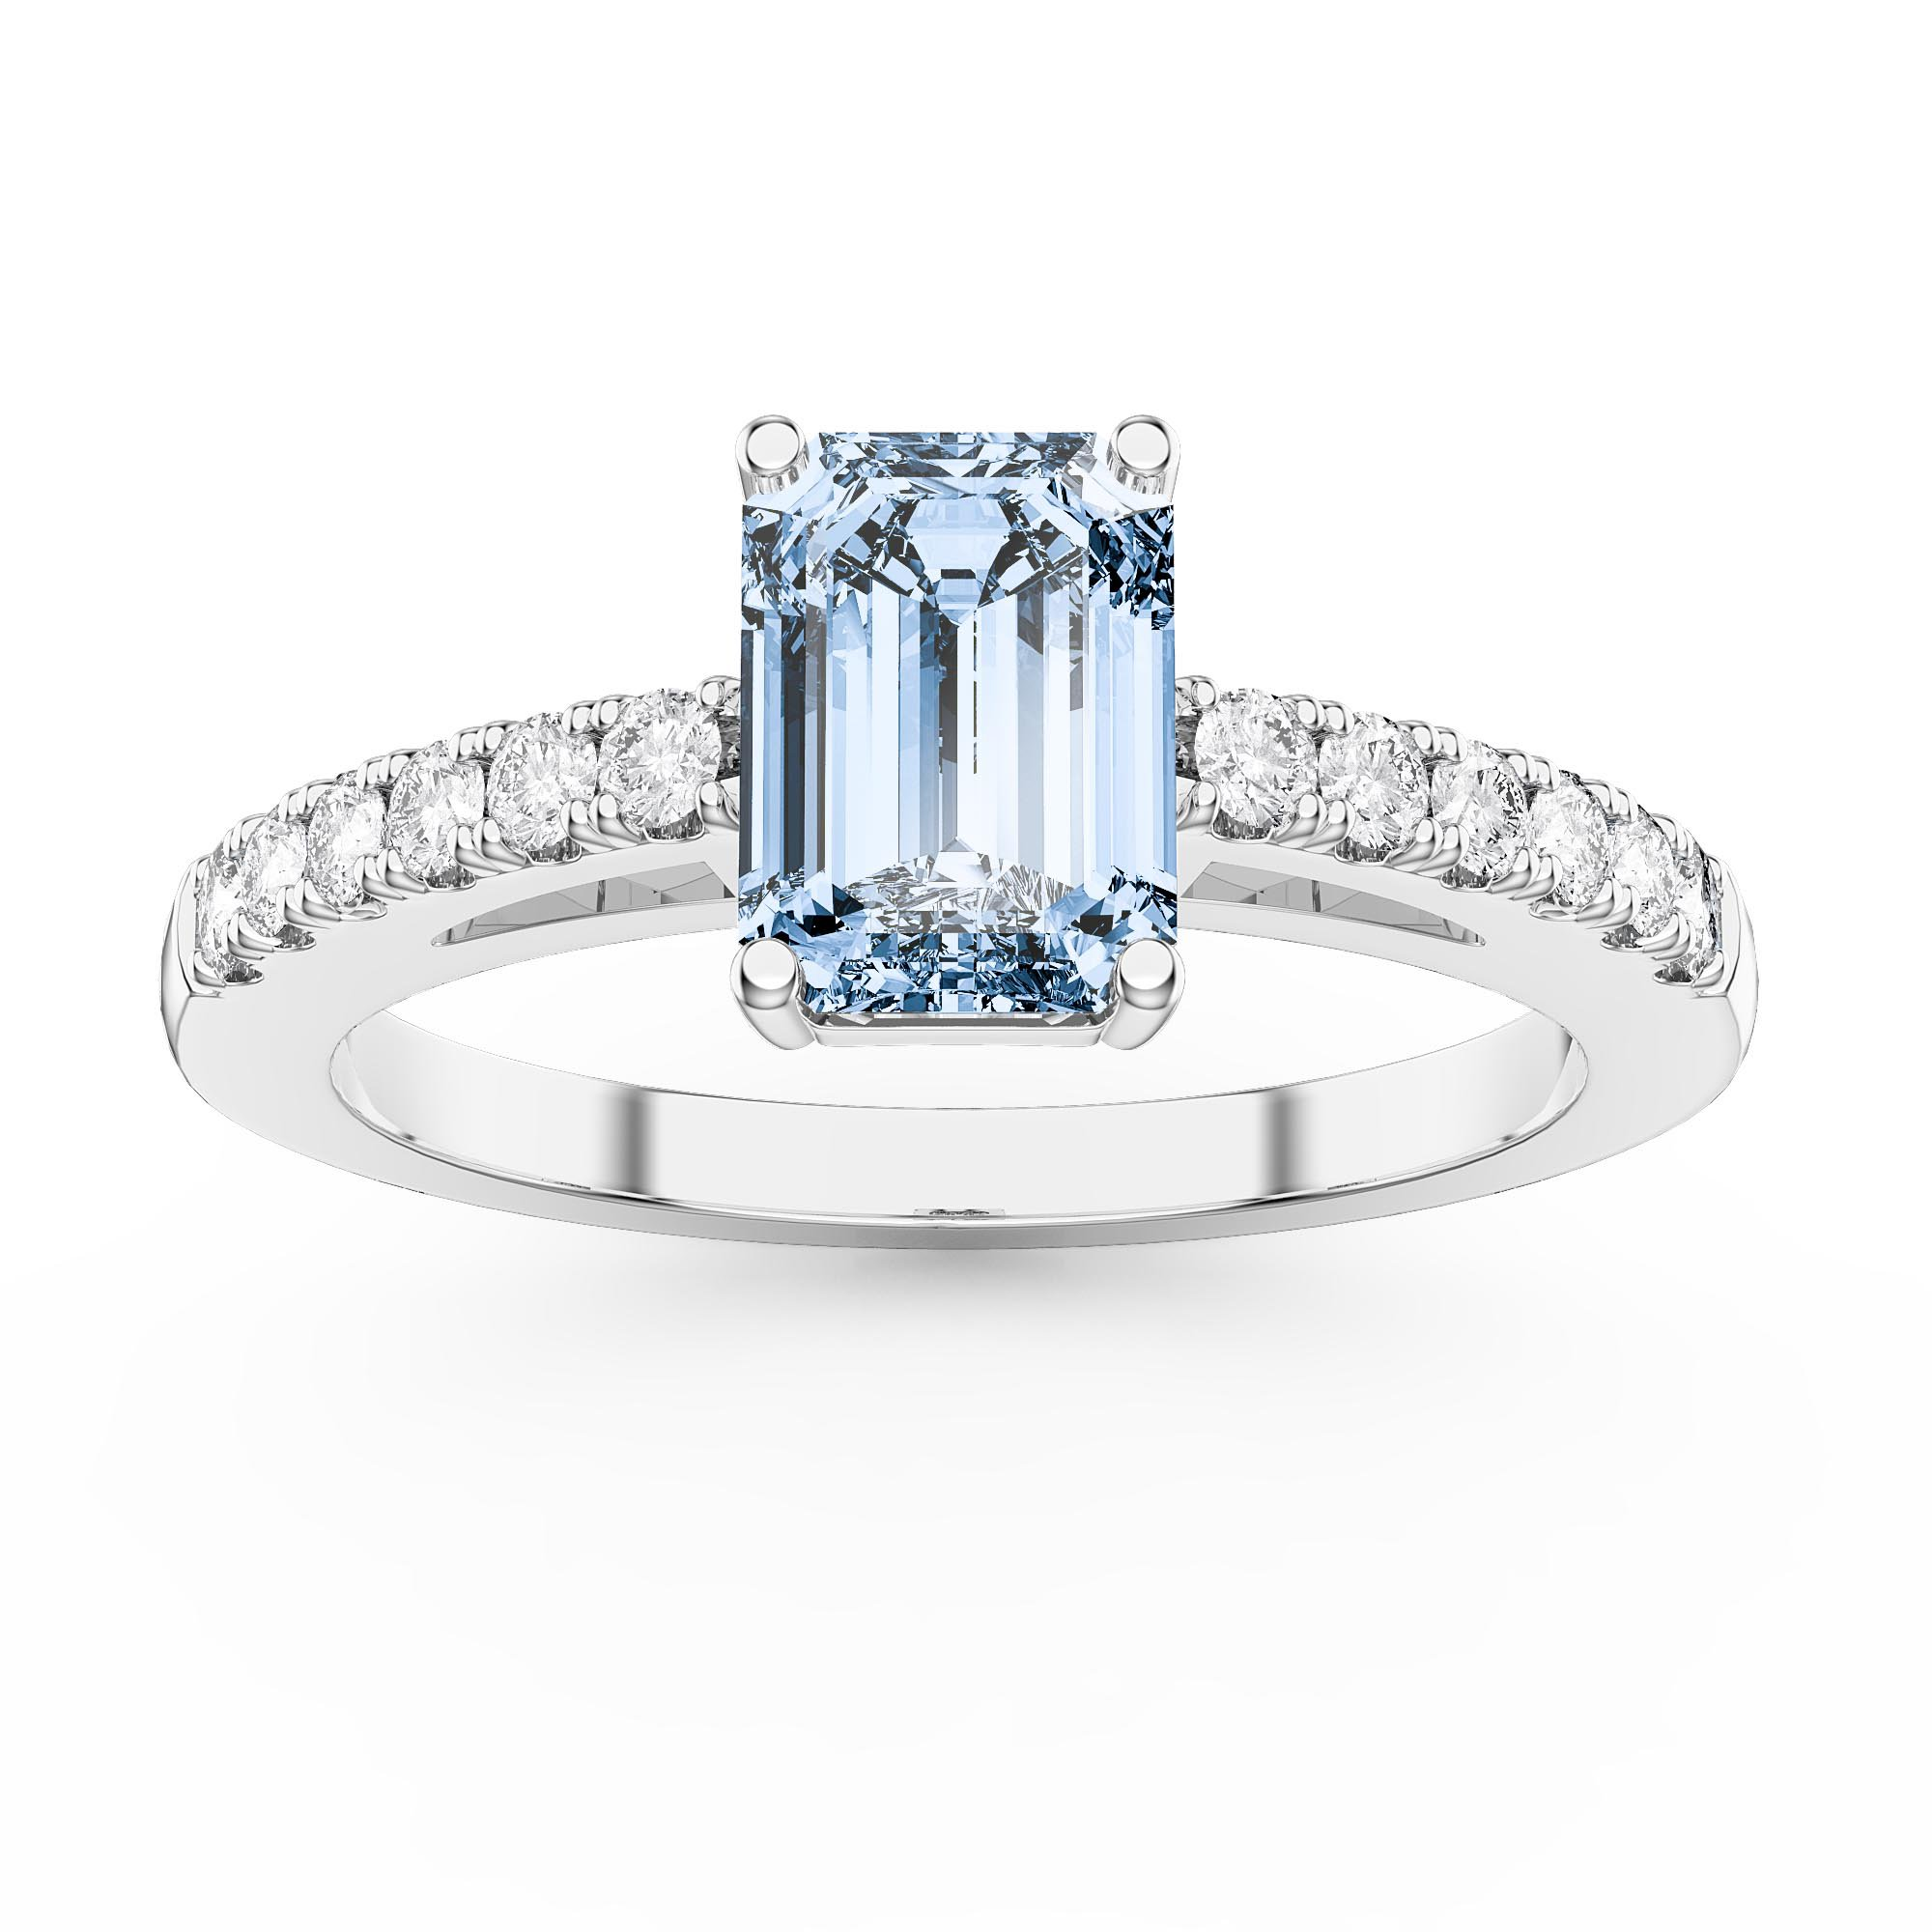 4a24218d763afe Unity 1ct Aquamarine Emerald Cut Diamond Pave 18ct White Gold Engagement  Ring. Tap to expand